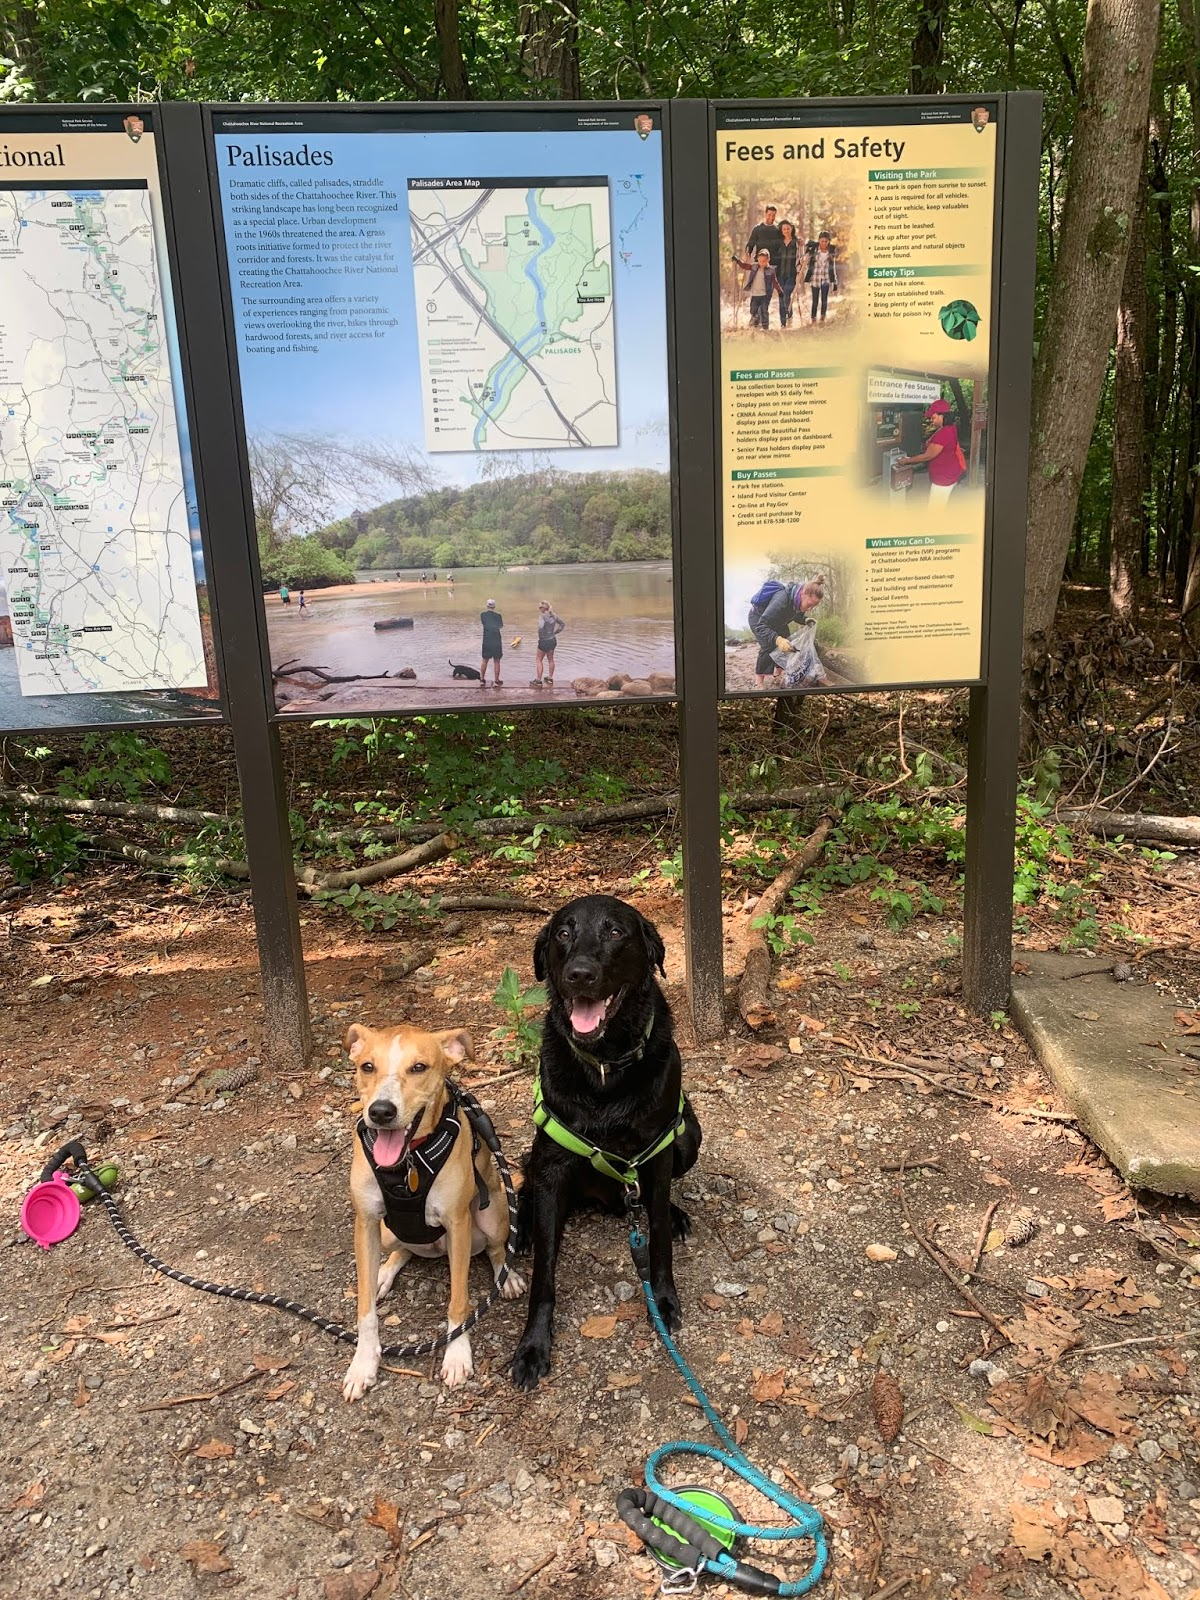 Albus and his cousin Sydney sit remarkably still in front of the trailhead sign for the East Palisades Indian trail, waiting for treats please.